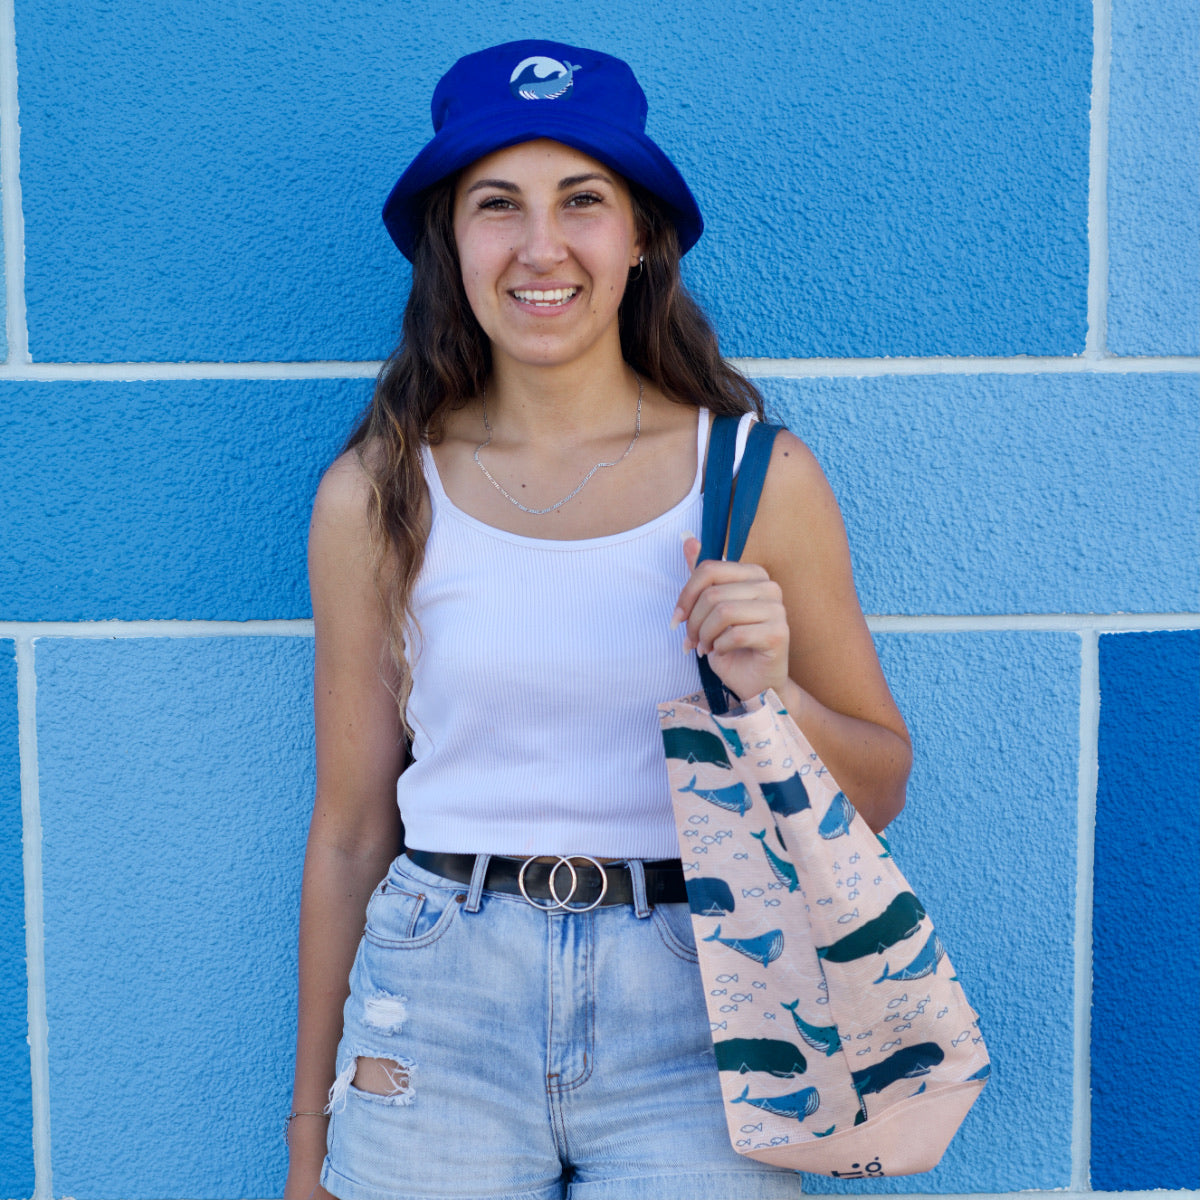 Royal Blue Whale Bucket Hat